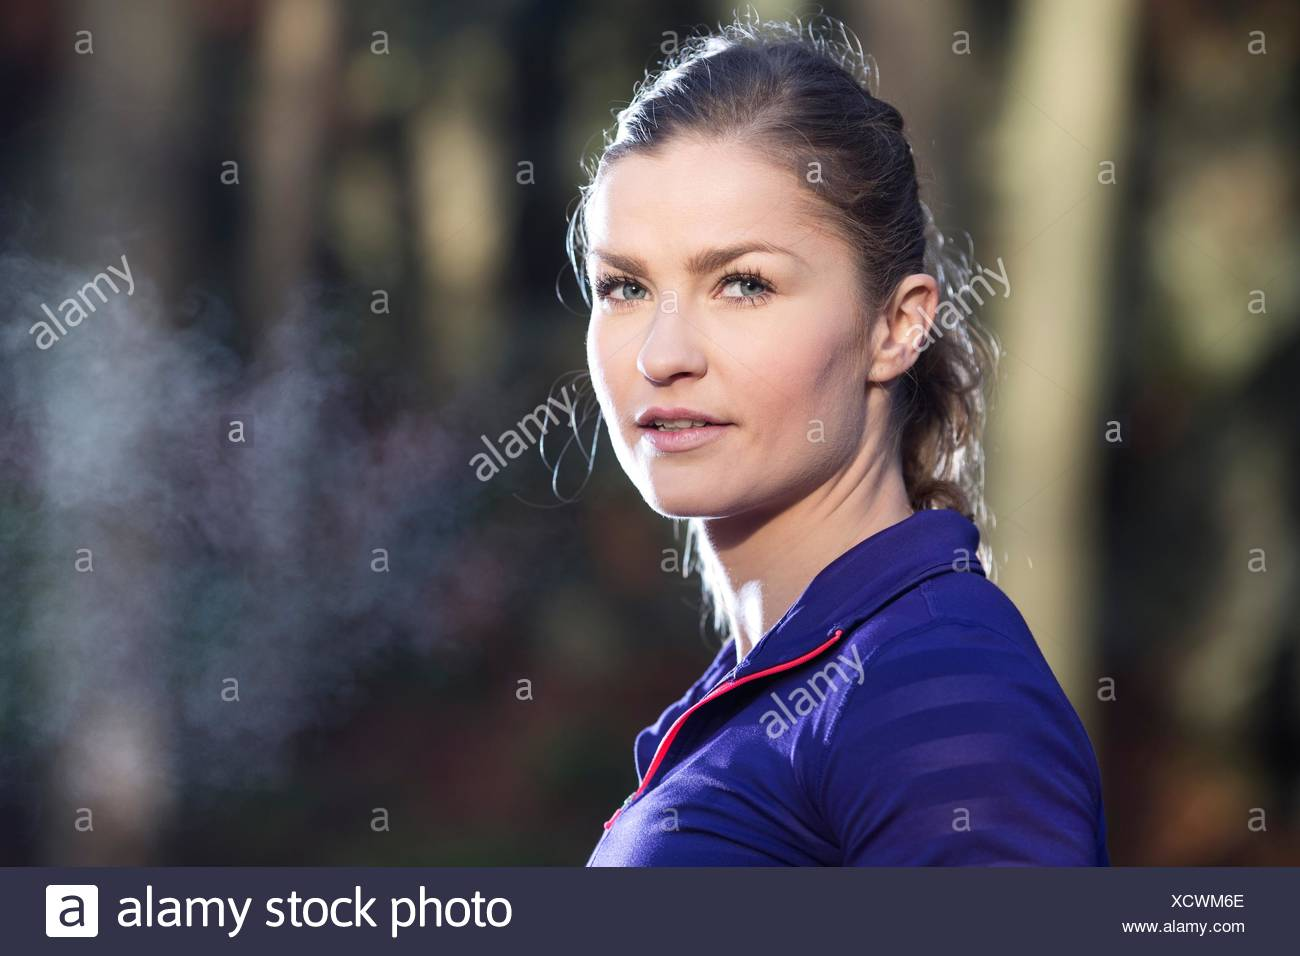 Portrait of young woman looking at camera, condensation de souffle Photo Stock